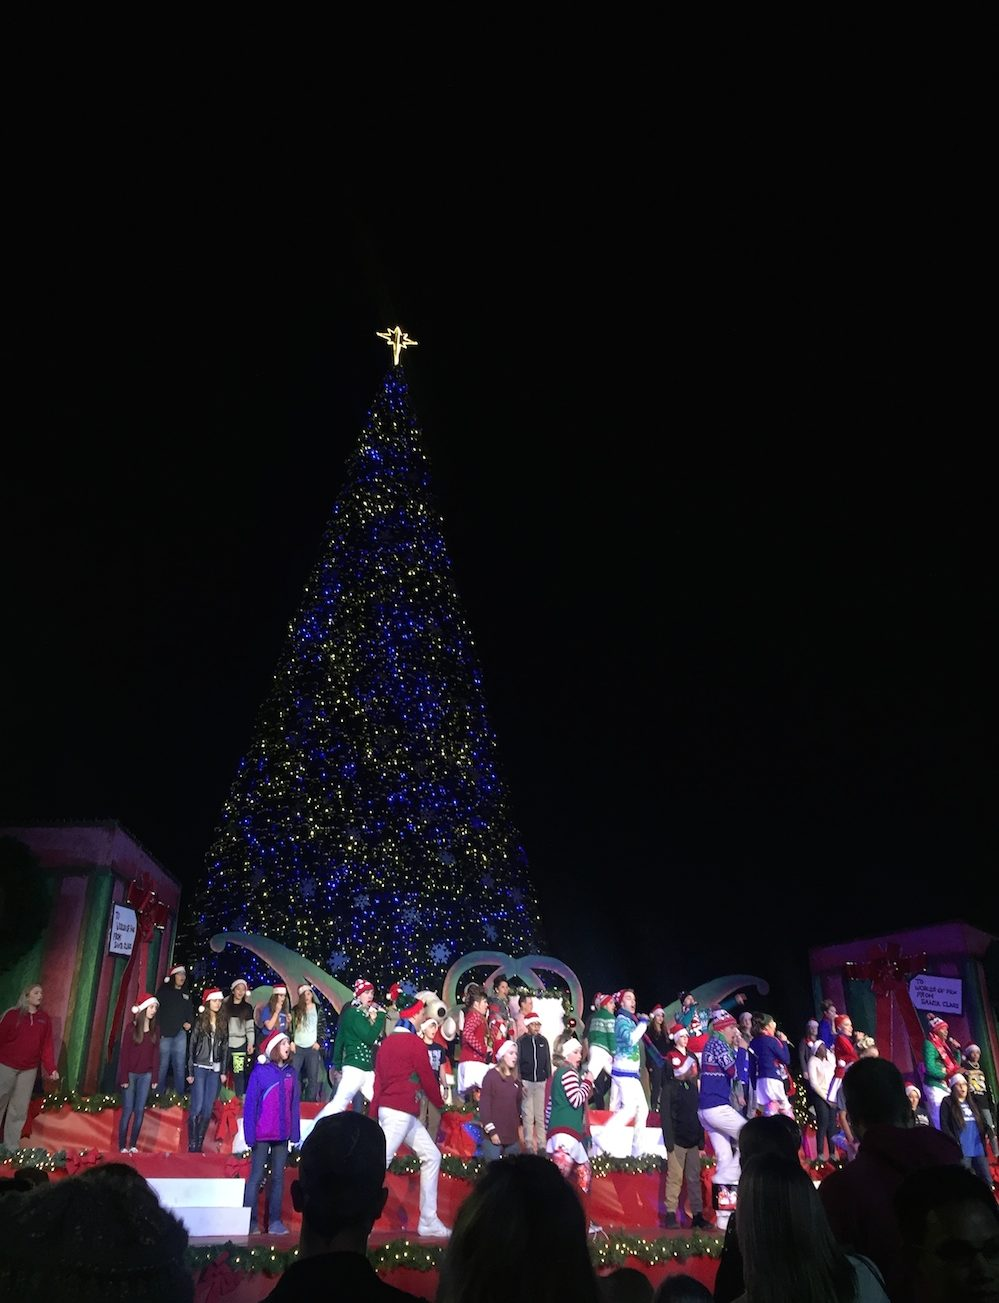 Official tree lighting ceremony at Worlds of Fun's WinterFest in Kansas City, Missouri